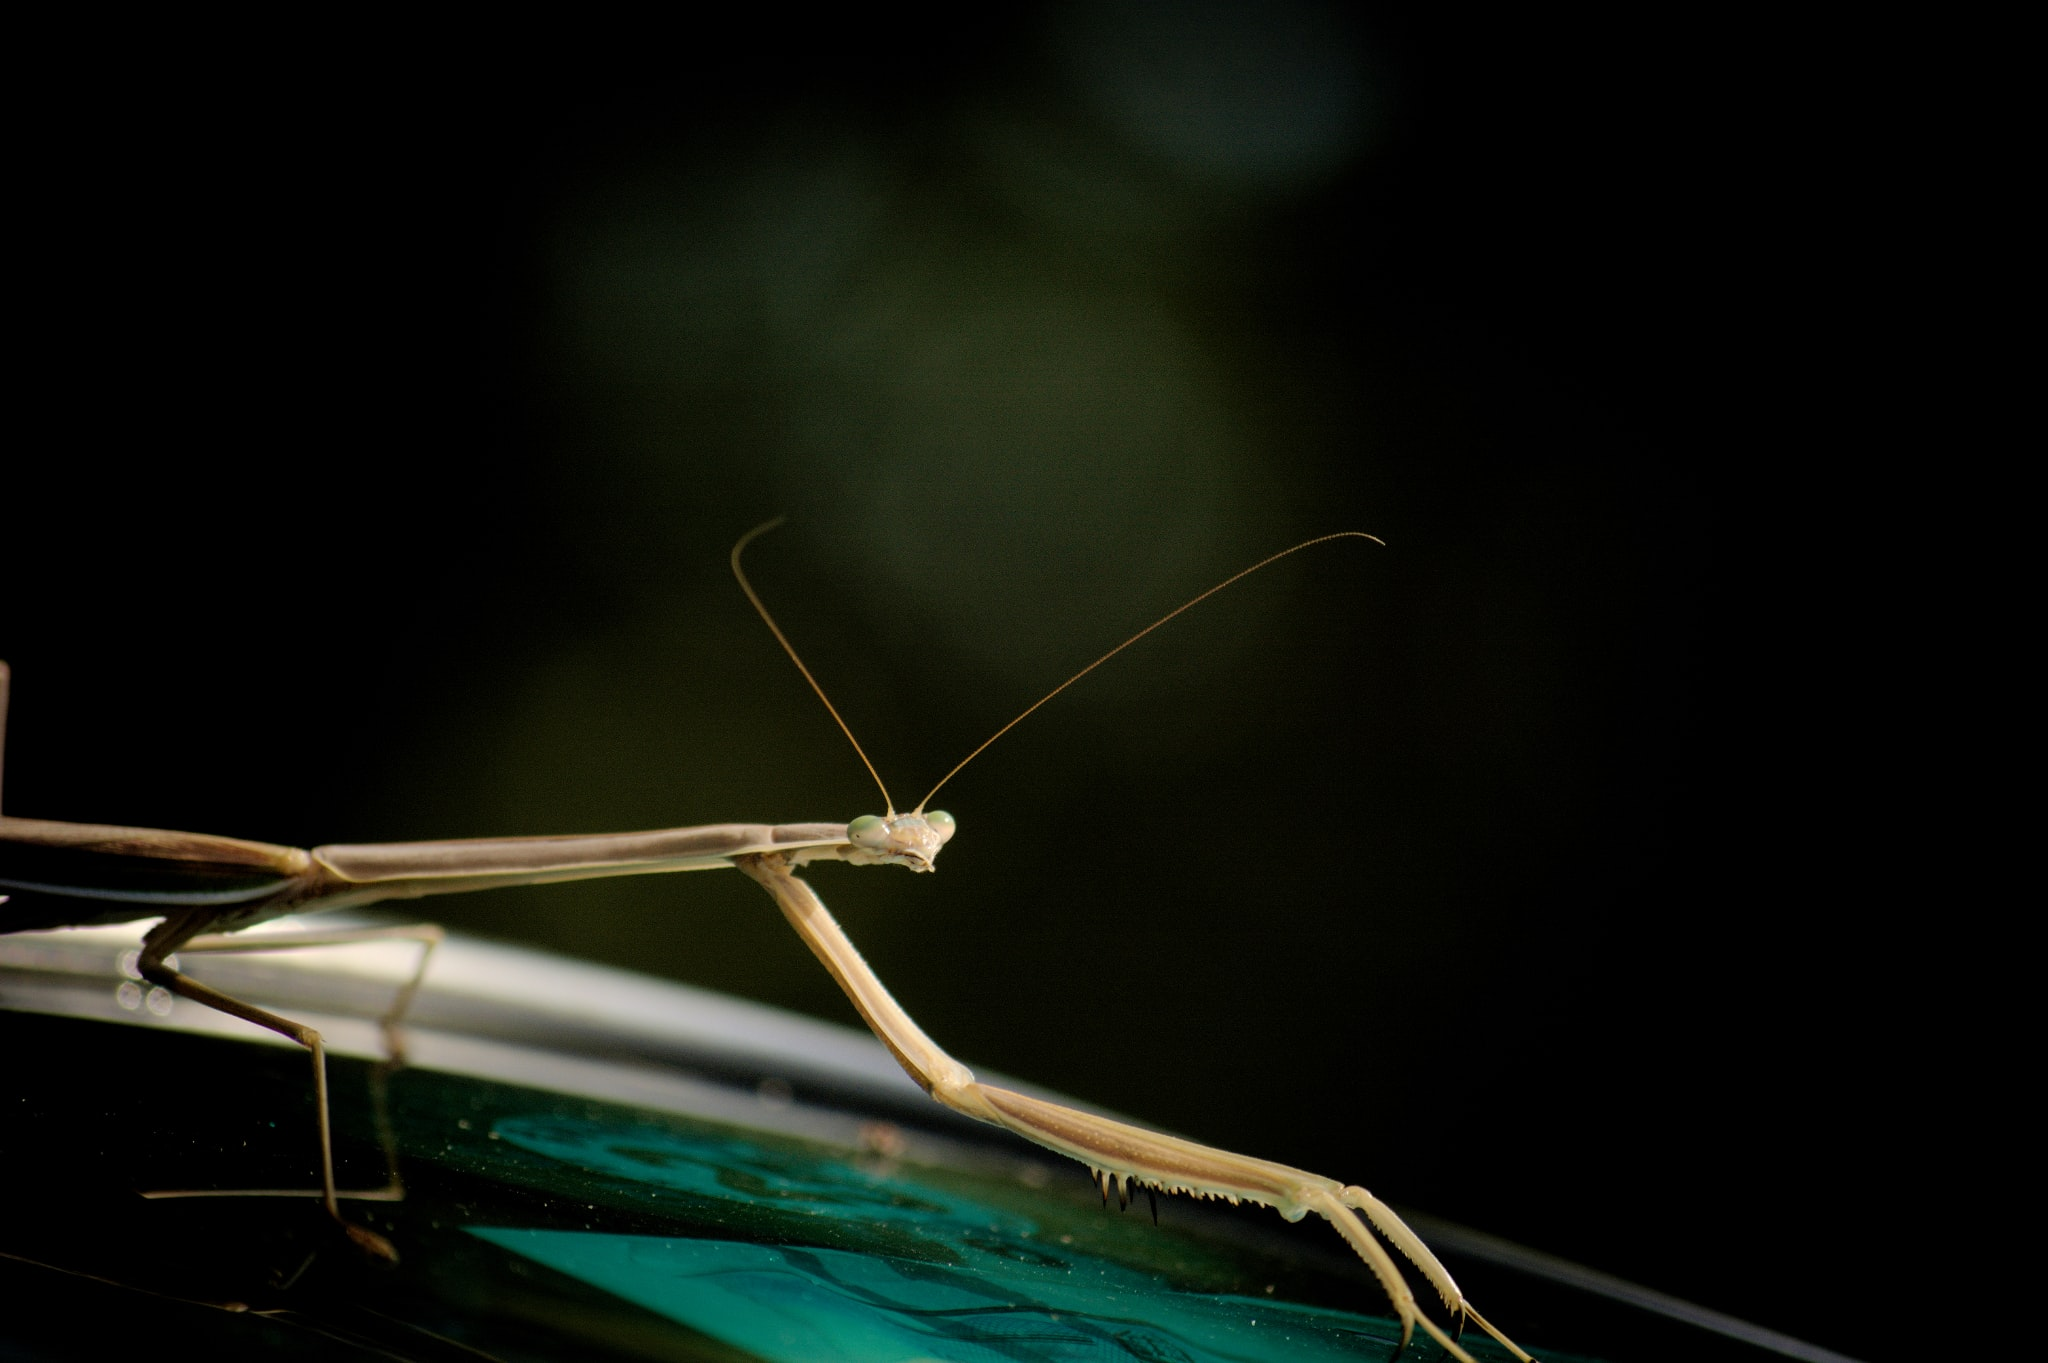 Praying Mantis stalks an insect in the wild